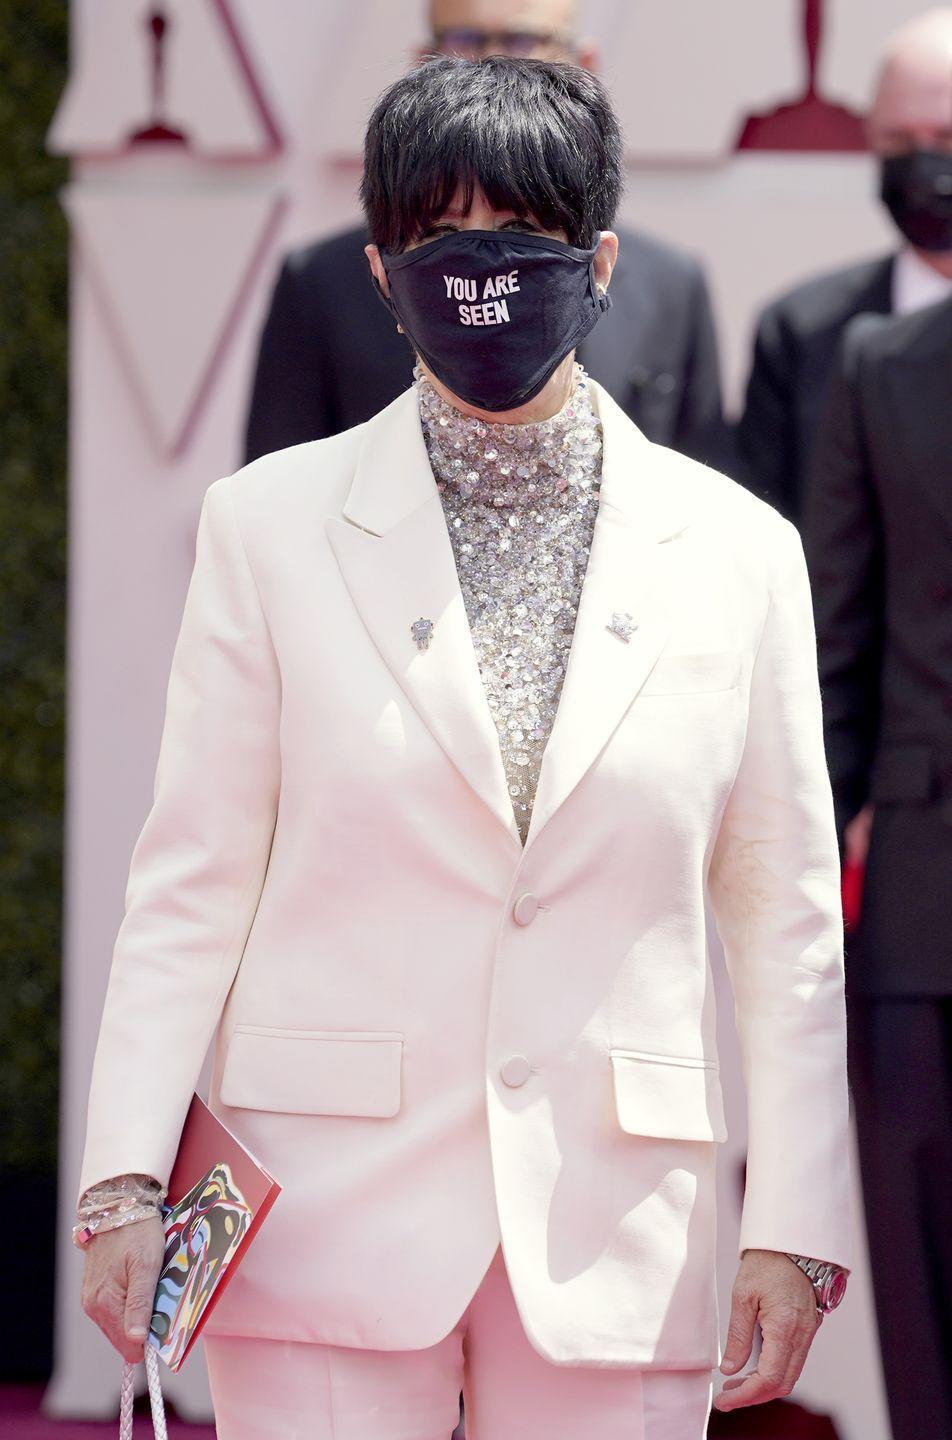 <p>The singer and songwriter teamed her Valentino white suit with a face mask emblazoned with the message 'You Are Seen', which refers to her song 'Io sì (Seen)', created for the 2020 film The Life Ahead.</p>